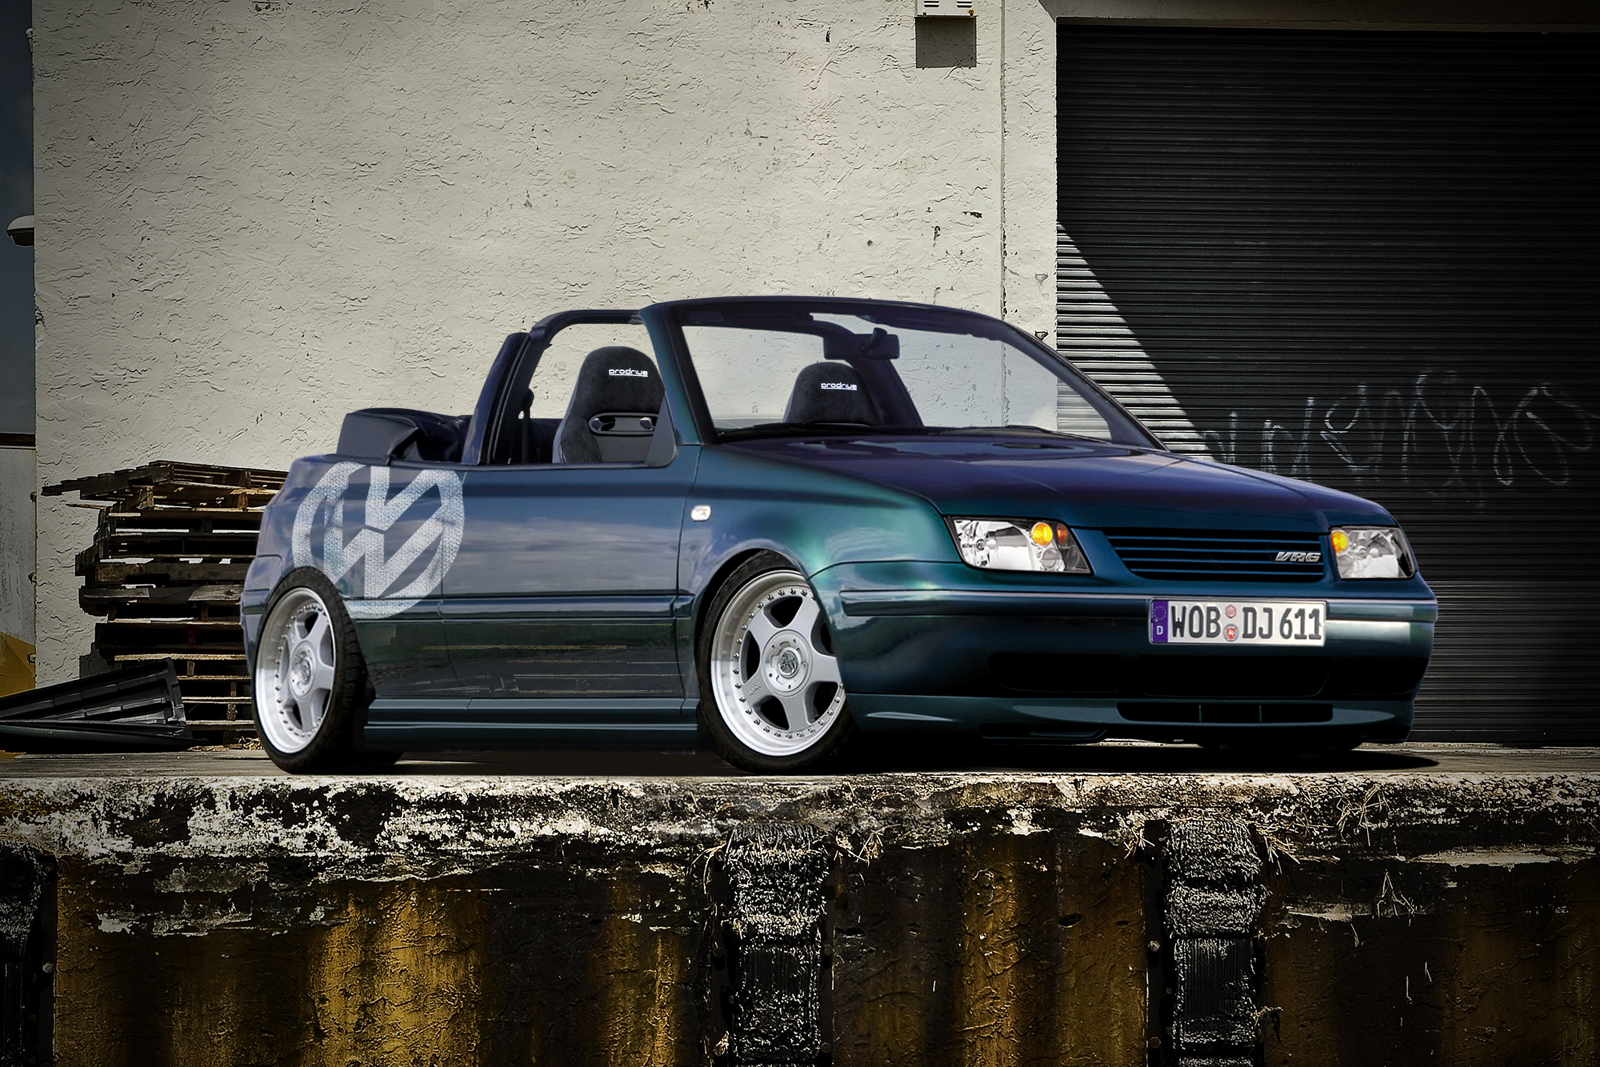 VW Golf Cabrio image #6